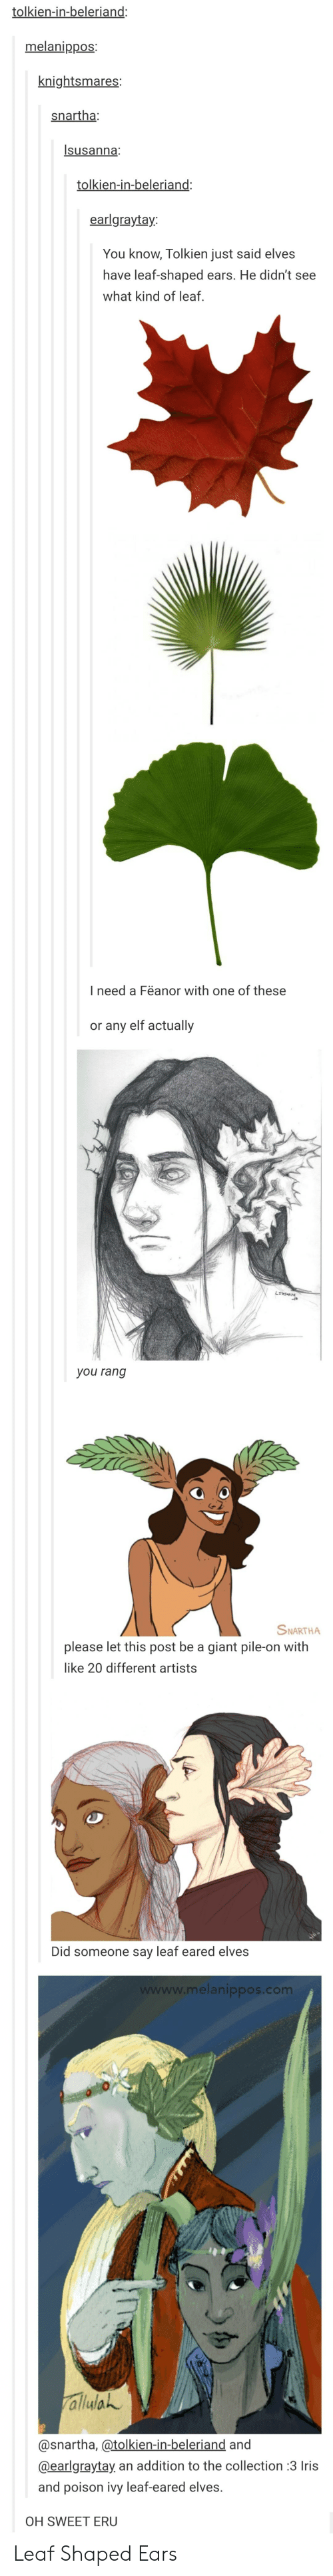 pile on: tolkien-in-beleriand:  melanippos:  knightsmares:  snartha:  Isusanna  tolkien-in-beleriand:  earlgraytay:  You know, Tolkien just said elves  have leaf-shaped ears. He didn't see  what kind of leaf.  I need a Feanor with one of these  or any elf actually  LsusAne  you rang  SNARTHA  please let this post be a giant pile-on with  like 20 different artists  Did someone say leaf eared elves  wwww.melanippos.com  alluWah  @snartha, @tolkien-in-beleriand and  @earlgraytay an addition to the collection:3 Iris  and poison ivy leaf-eared elves  OH SWEET ERU Leaf Shaped Ears